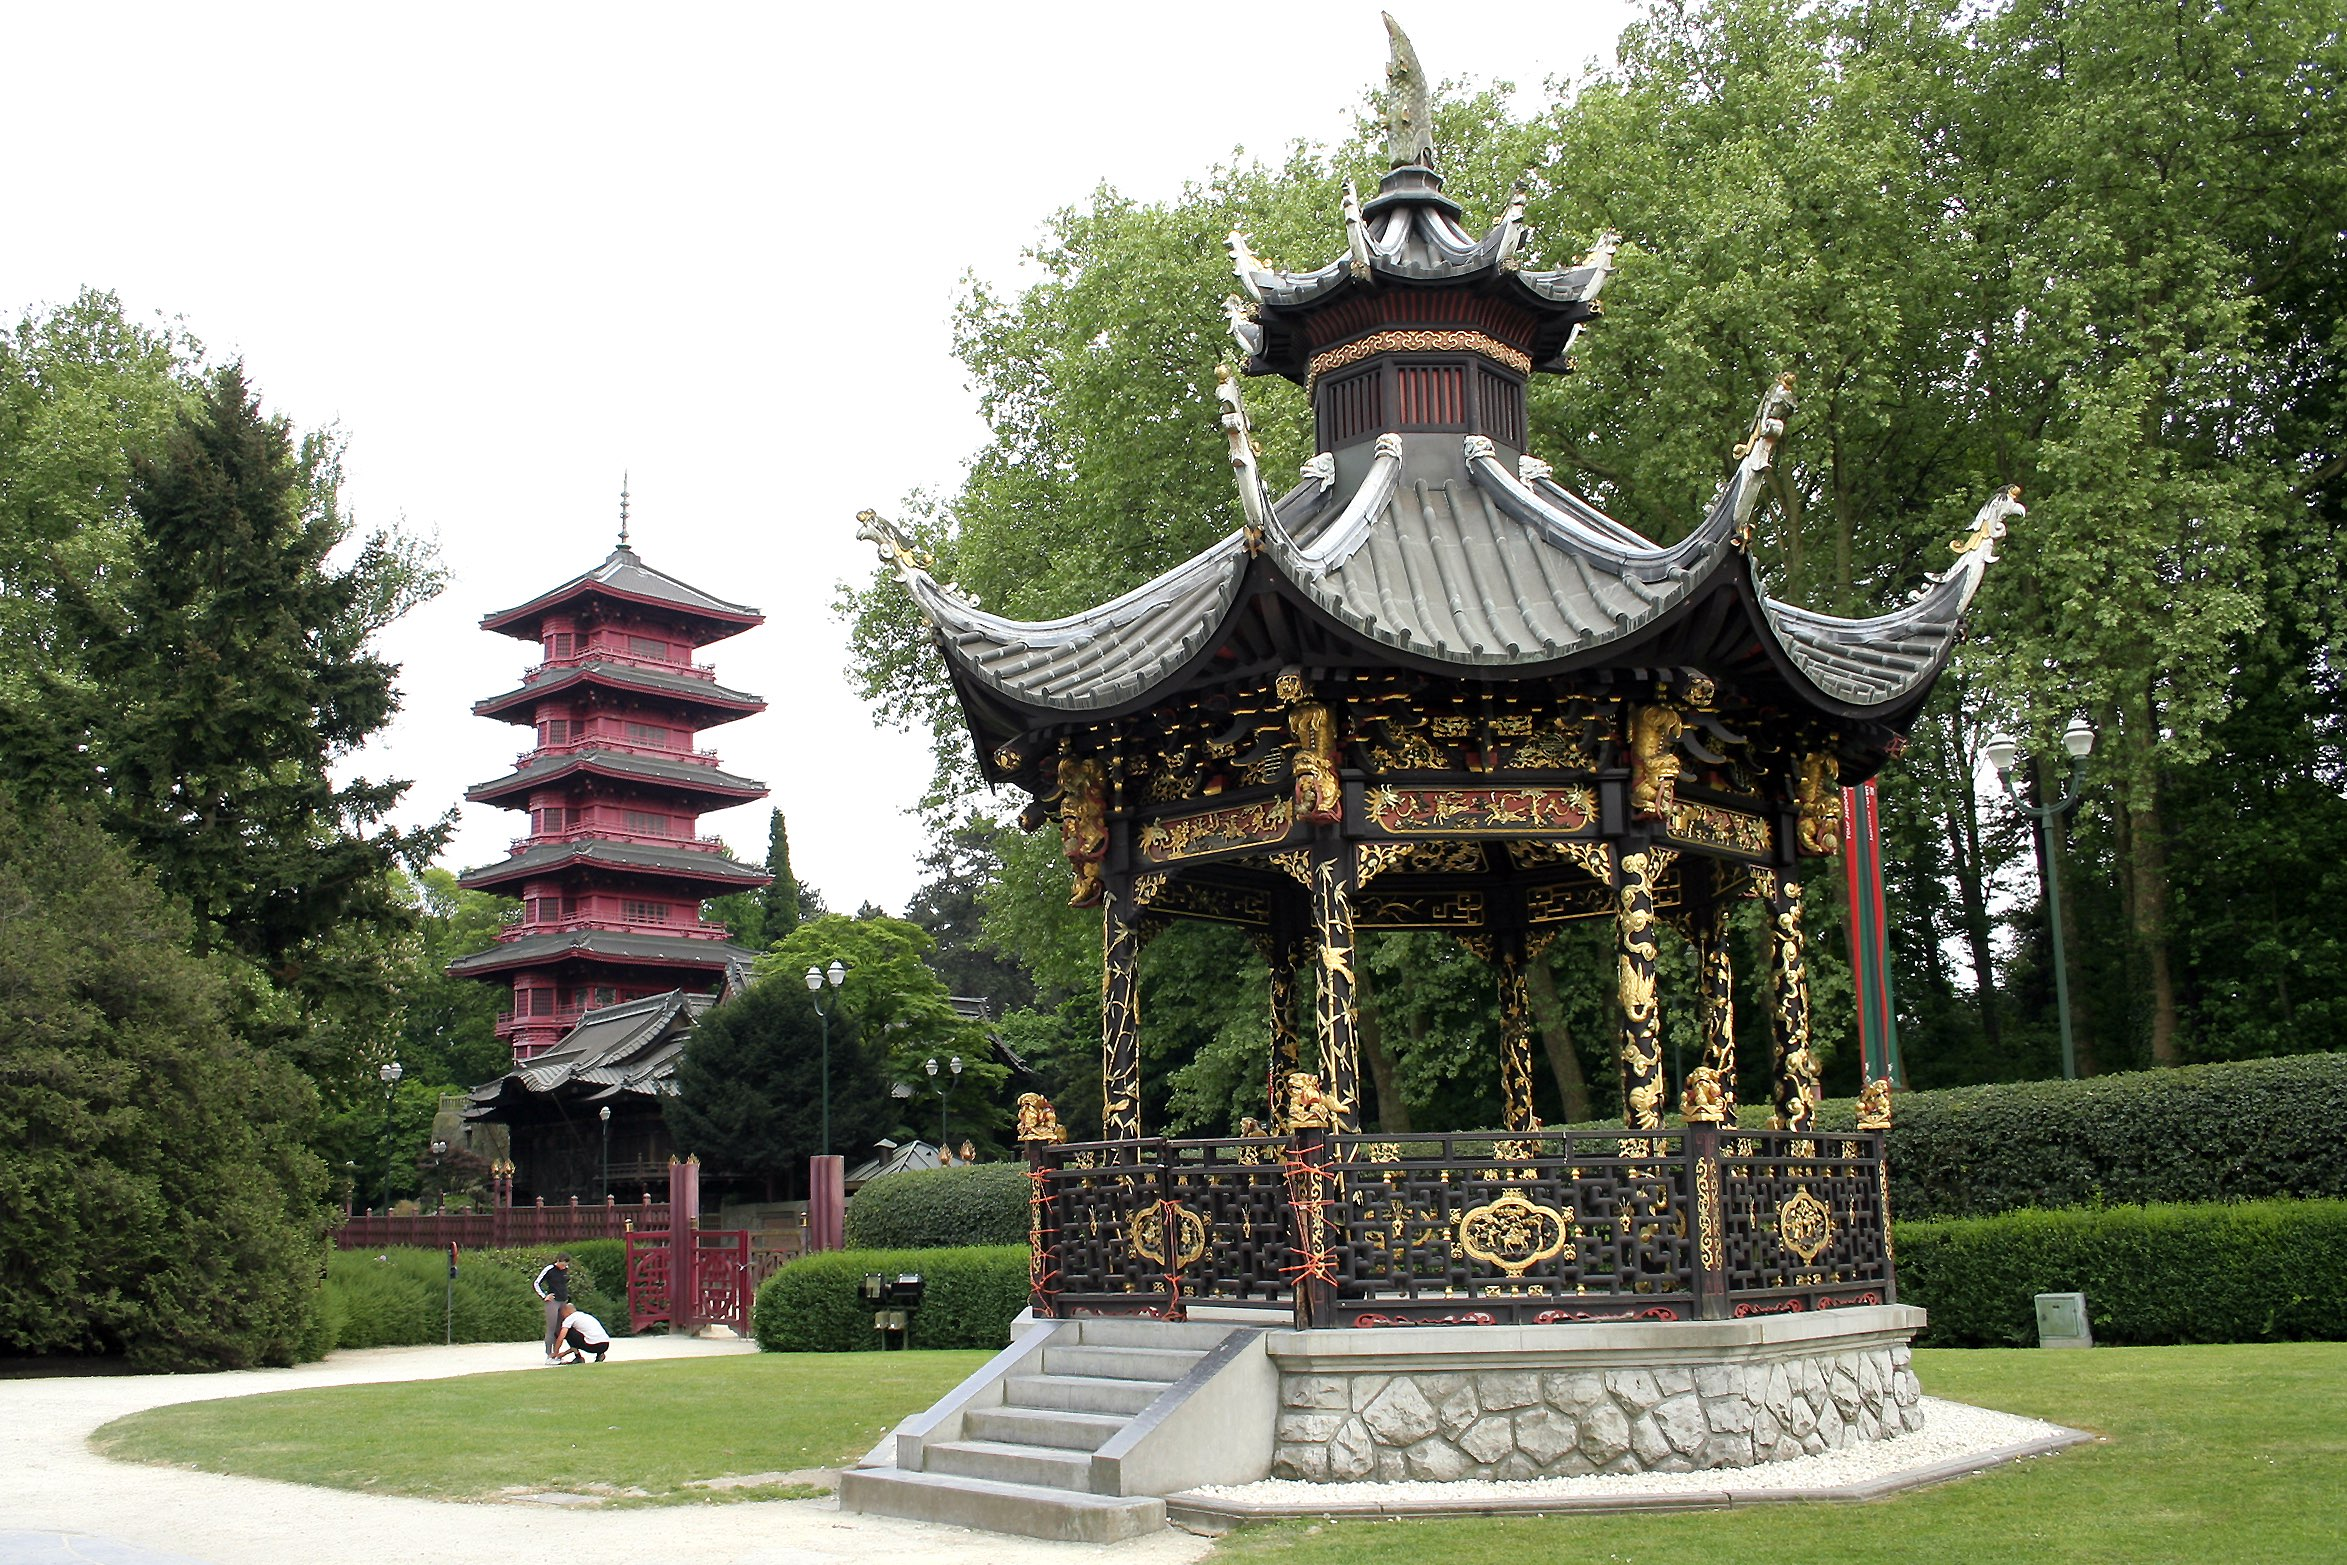 The Japanese Tower and kiosk of the Chinese Pavillion on the royal grounds | © Jean-Paul Grandmont/Wikimedia Commons